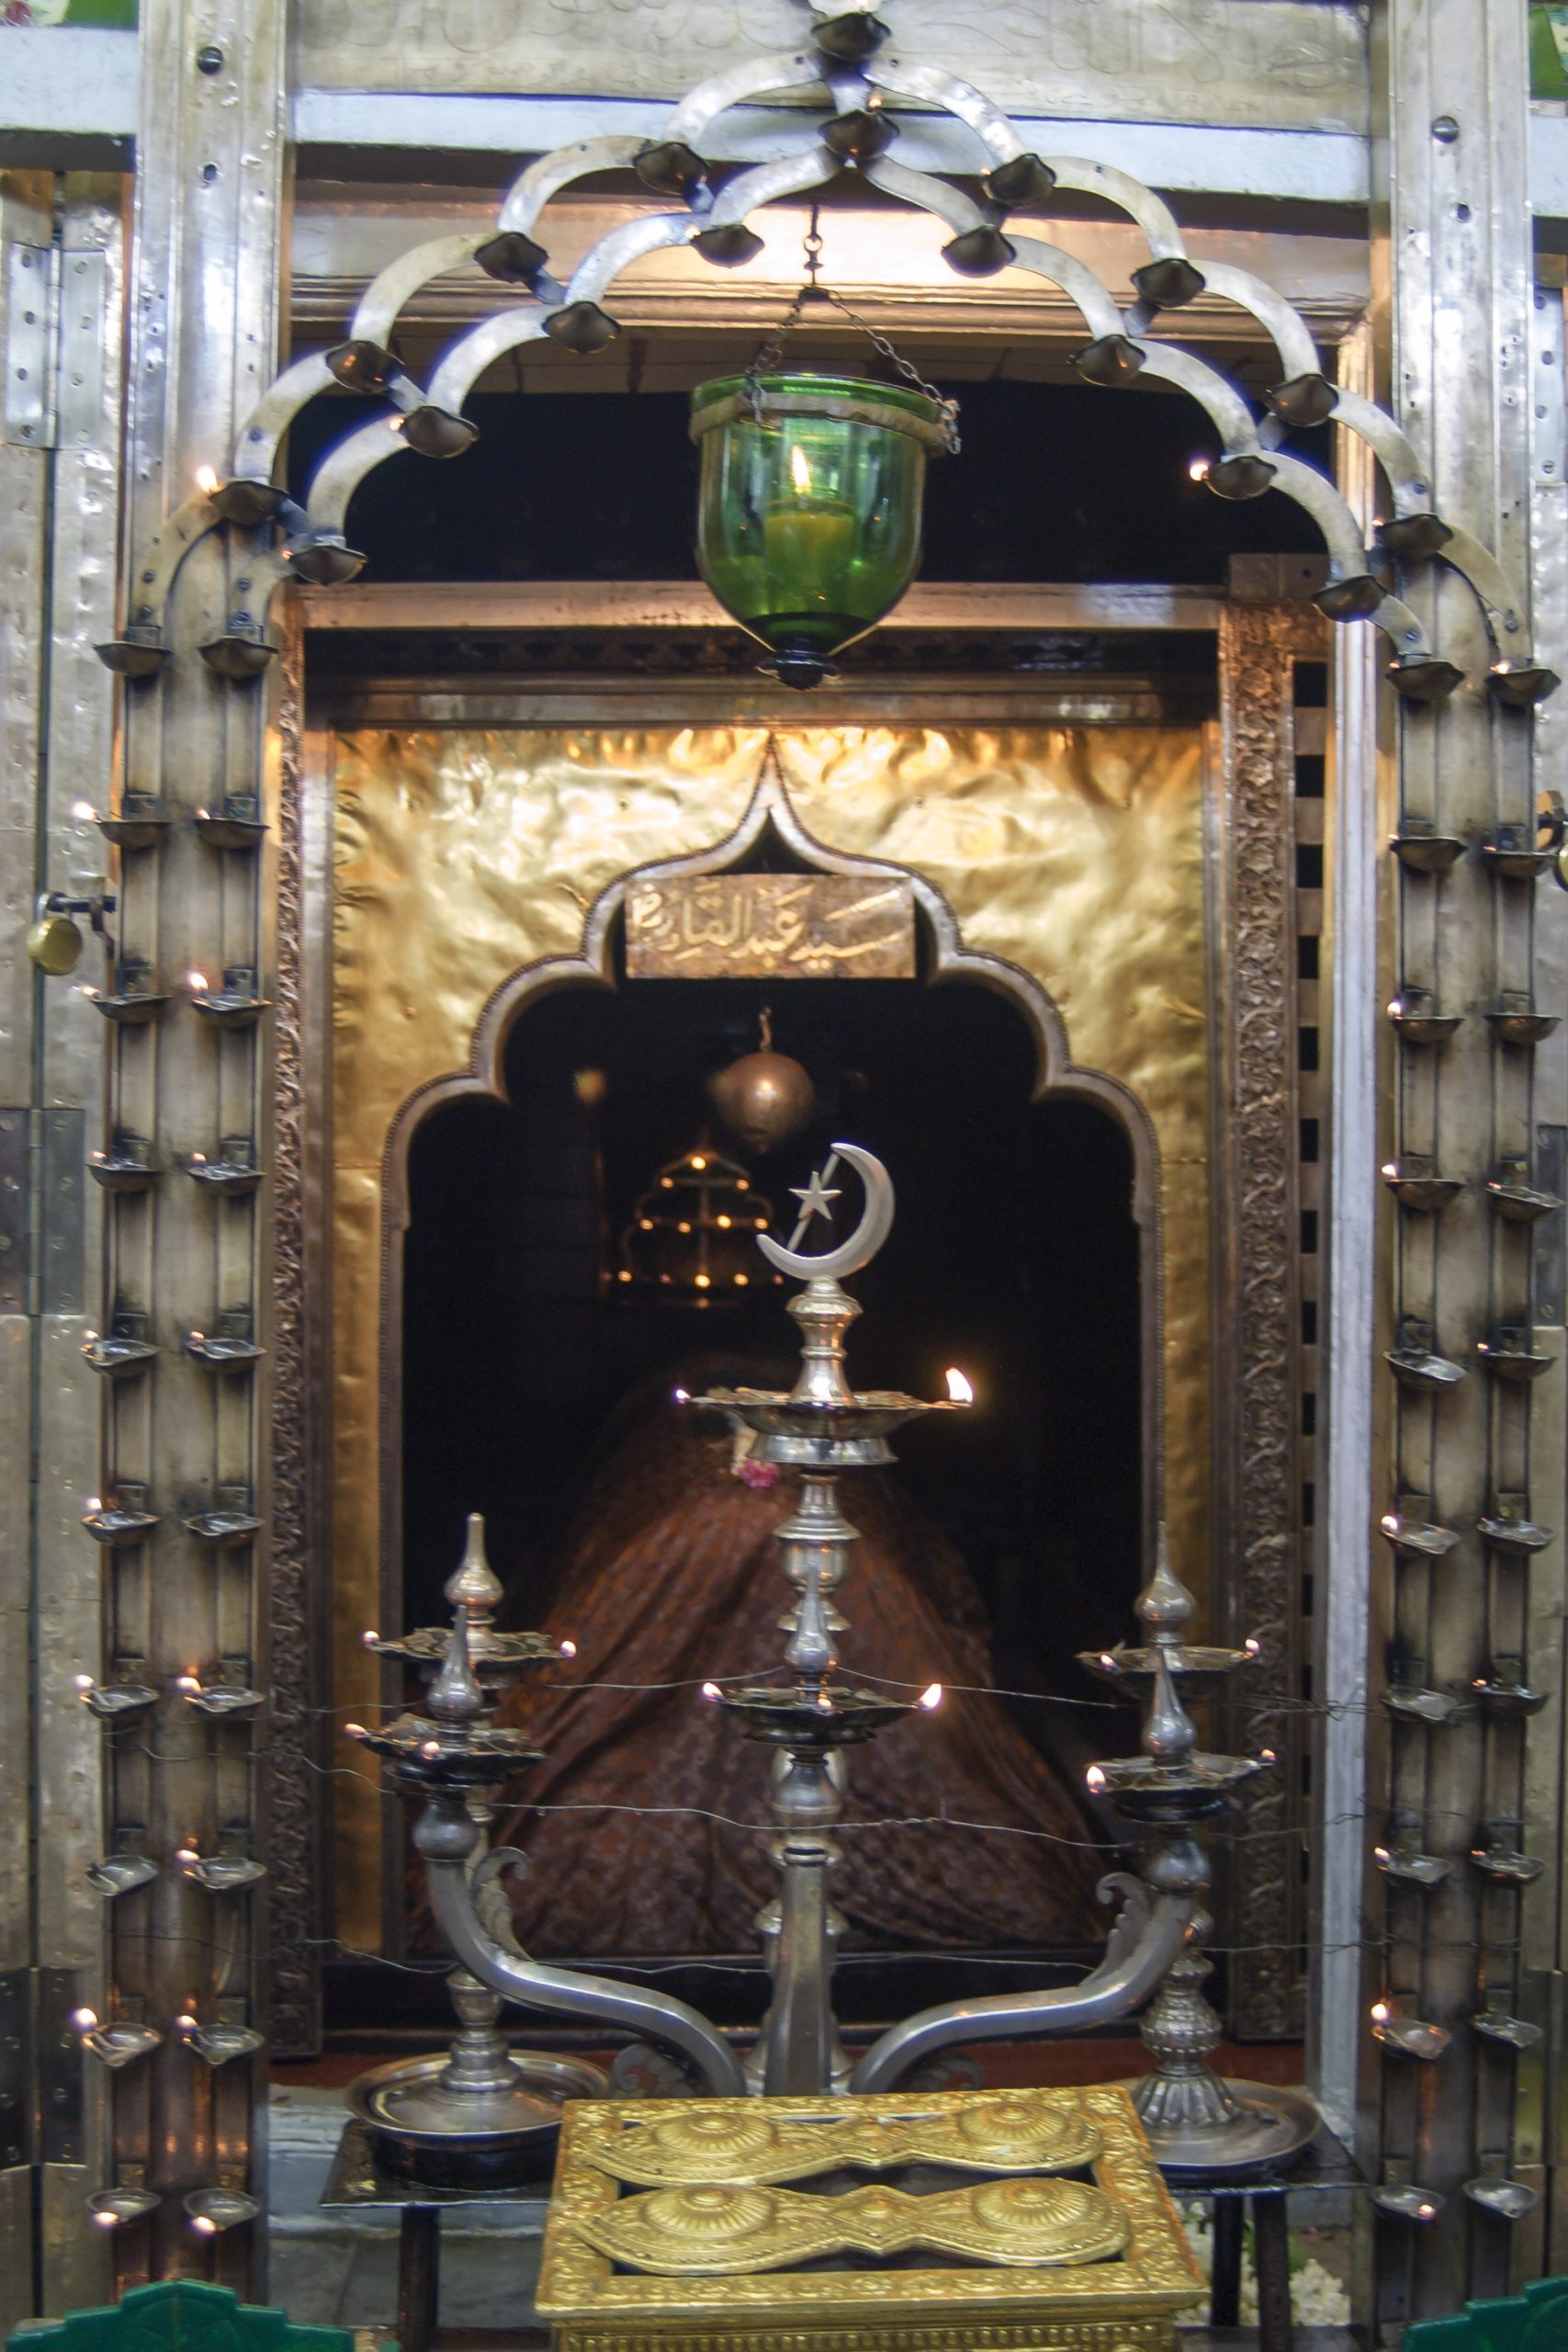 Who Is The Nagore Dargah Dedicated To?